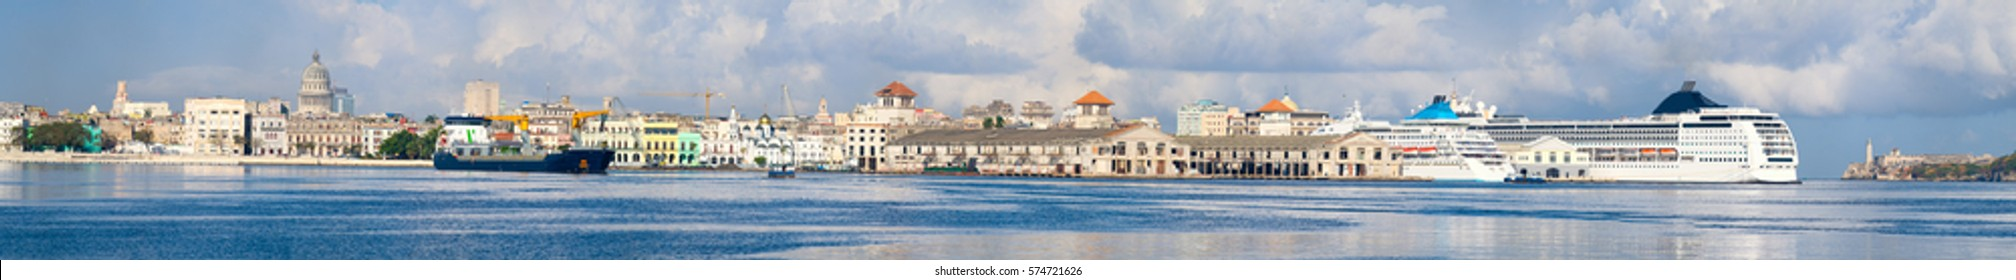 Very high resolution panoramic image of the Bay of Havana in Cuba with a view of the entire Old Havana skyline and several landmarks